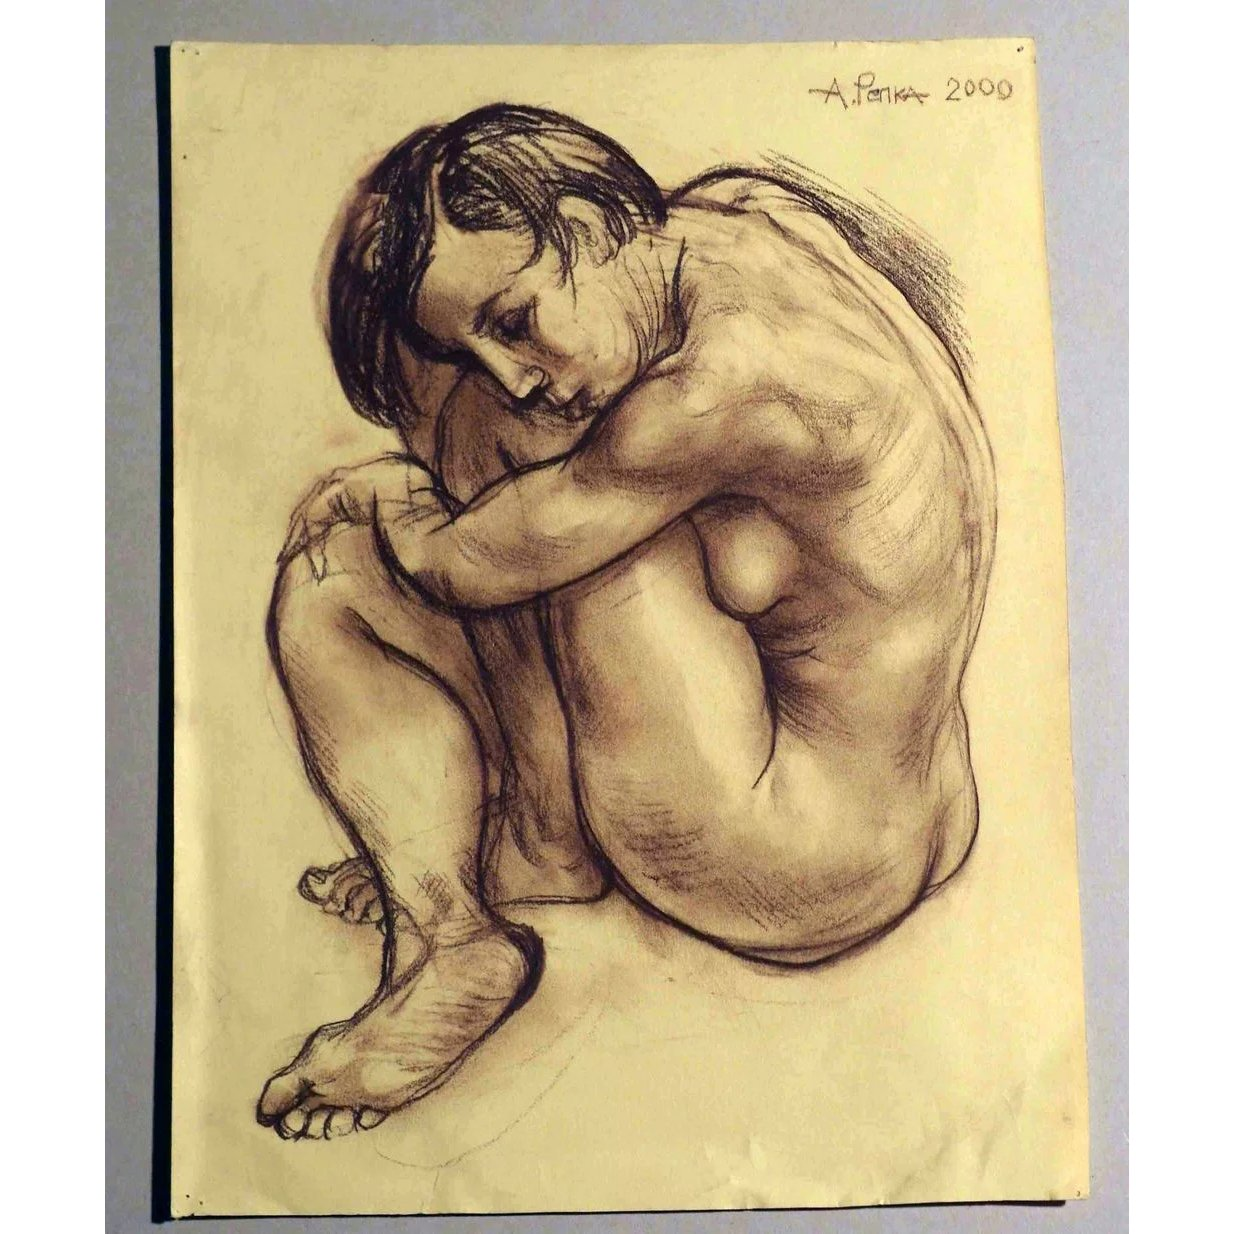 Woman nude pencil drawing by alexander repka russian artist listed sold ruby lane